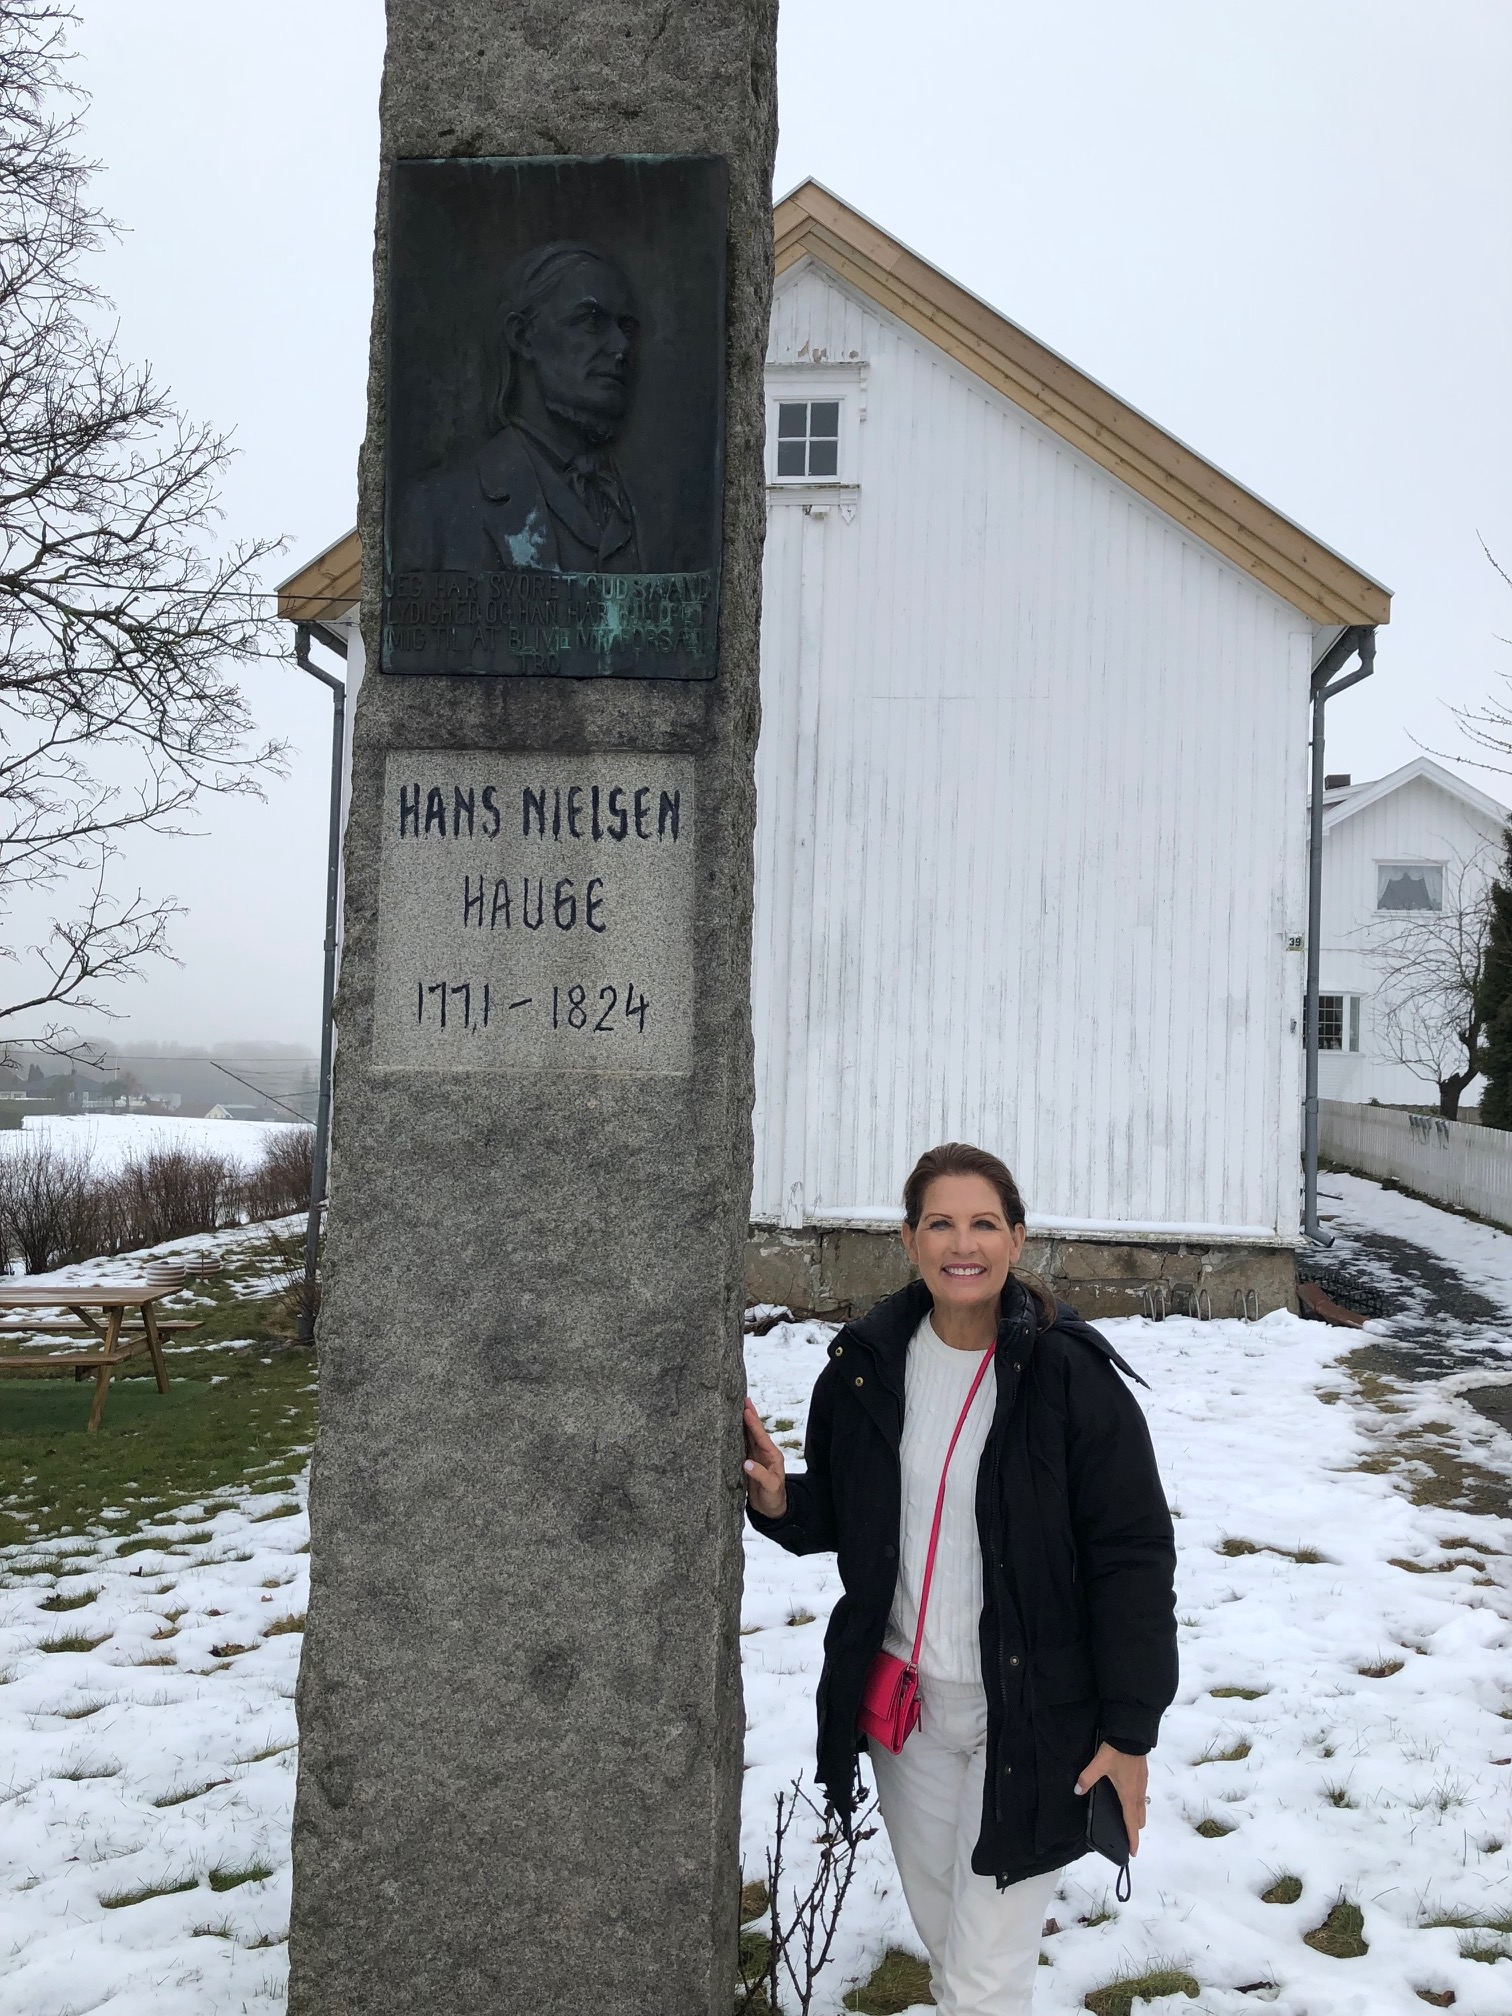 Former U.S. Rep. Michele Bachmann, R-Minn., visited Hauge´s childhood home while she was in Norway. She also said she is very interested in learning more about him and his life.